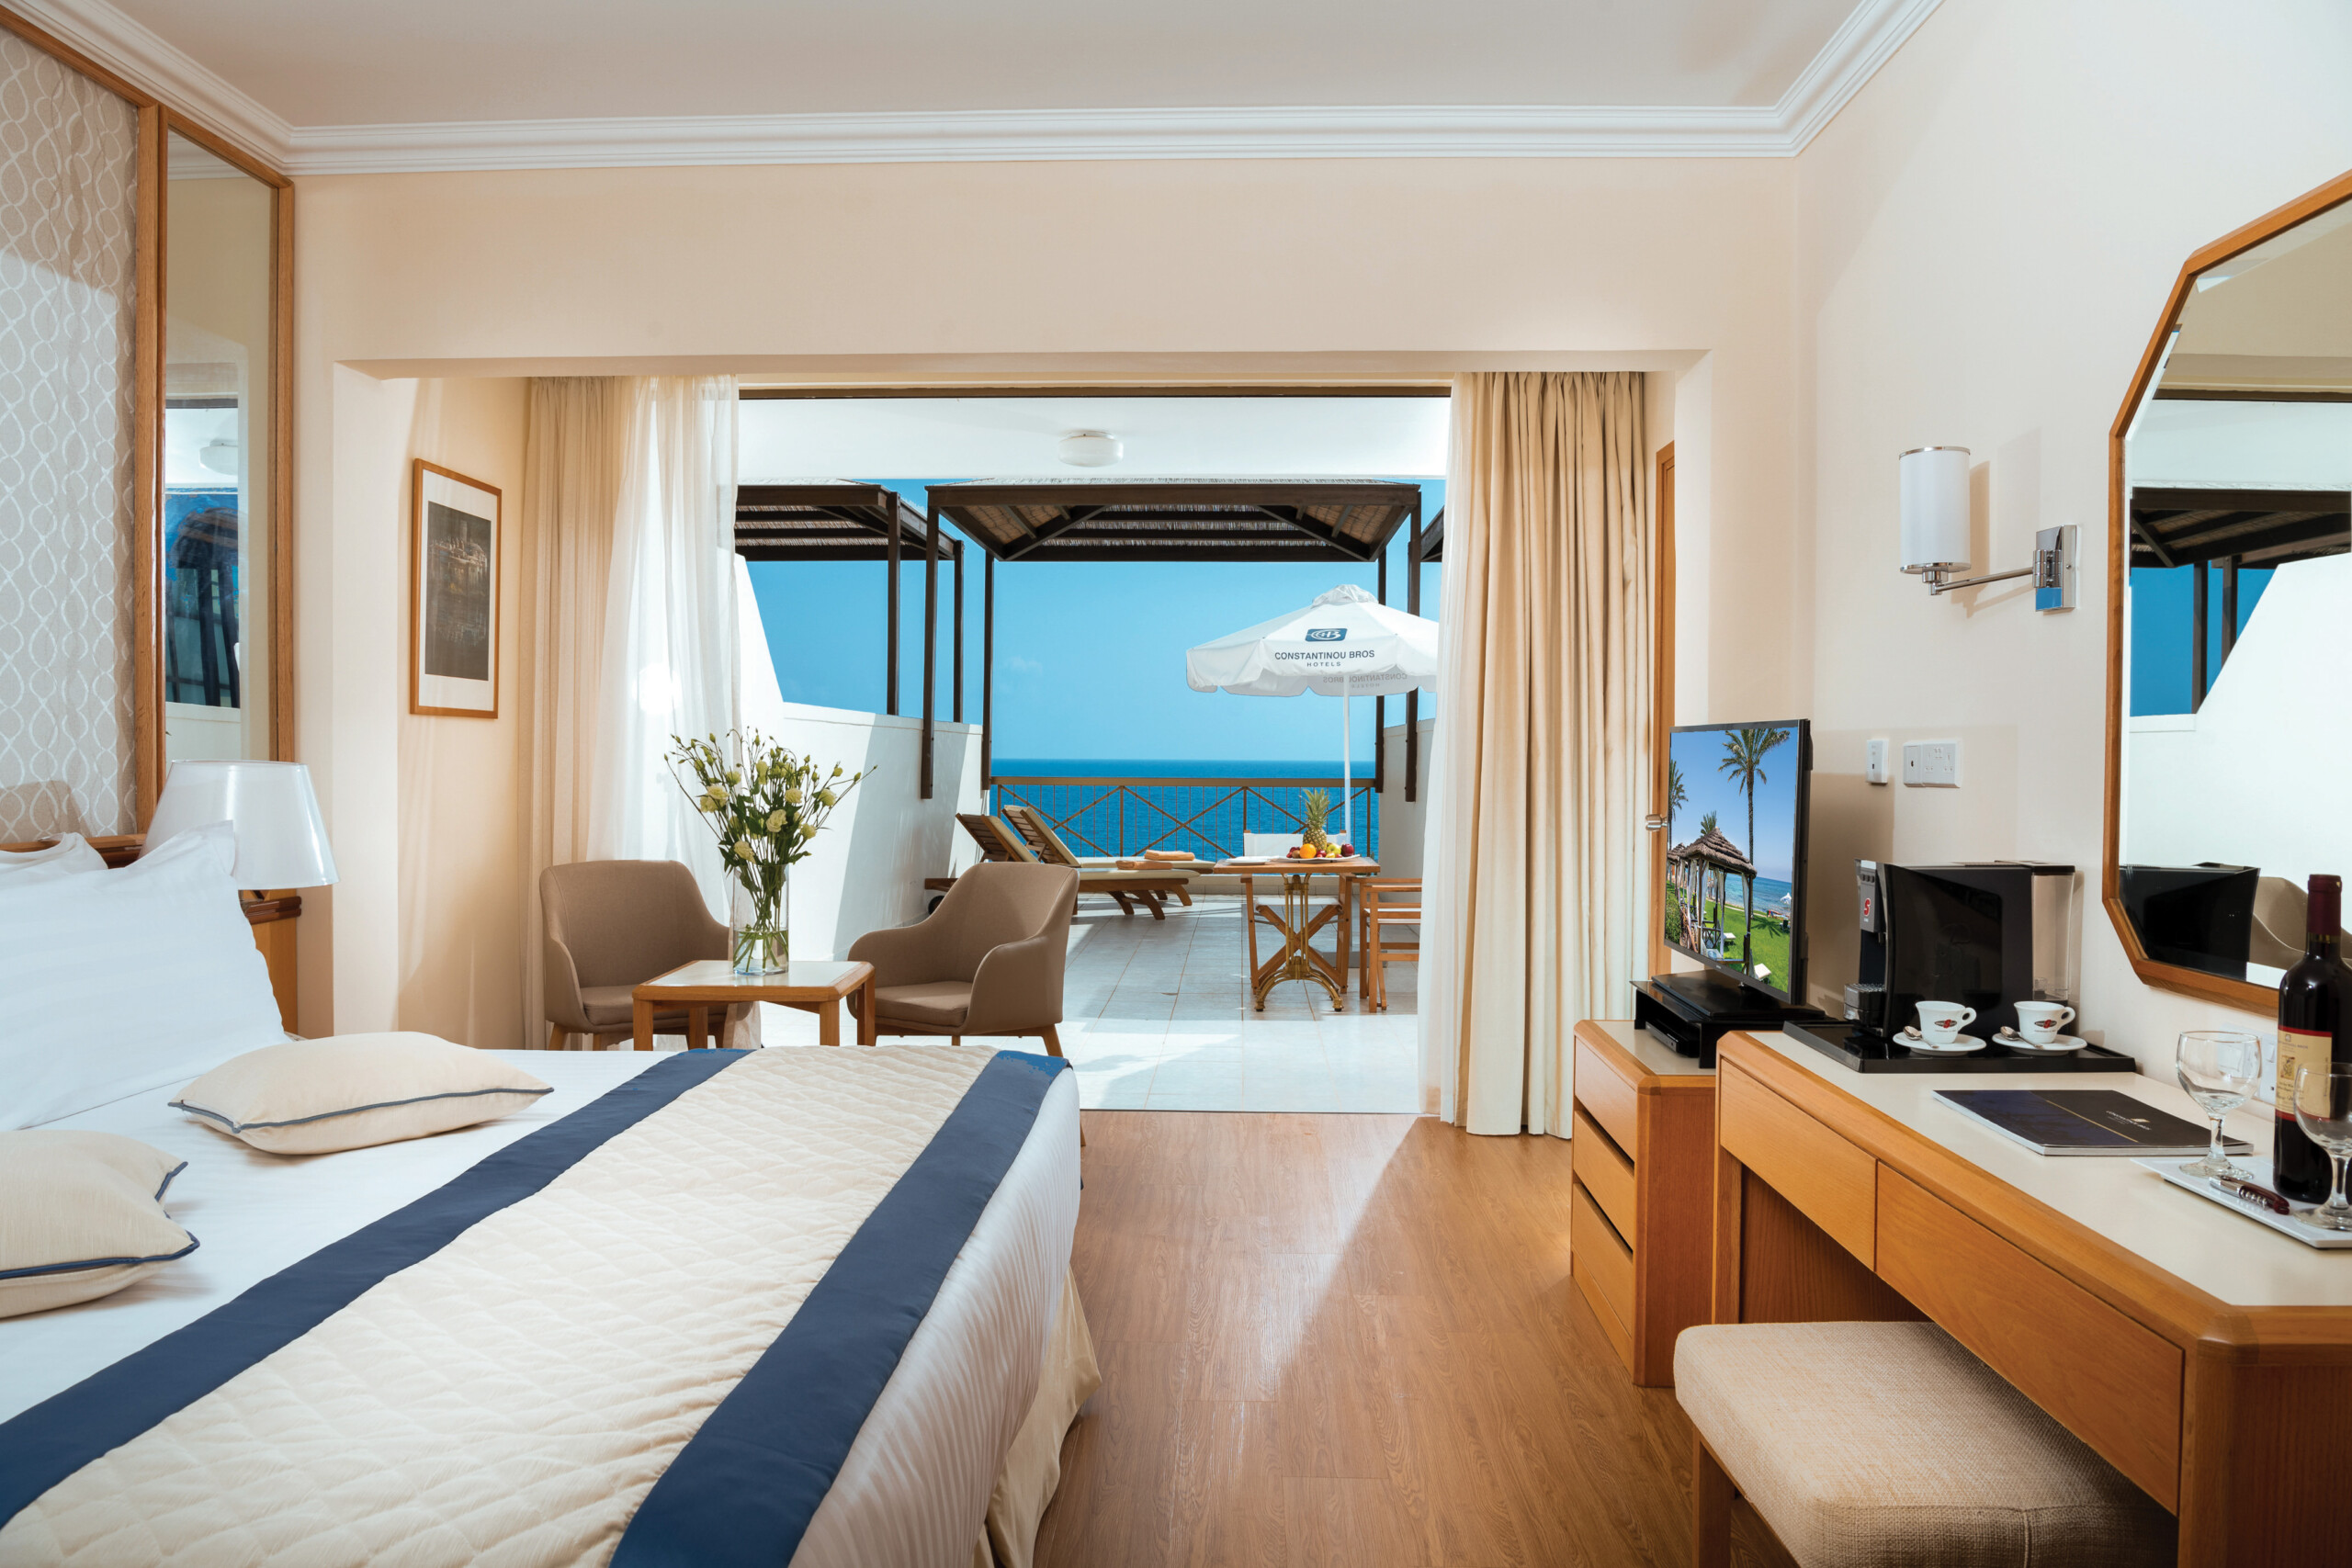 62 ATHENA BEACH HOTEL EXECUTIVE ONE & TWO BEDROOM SUITE WITH TERRACE